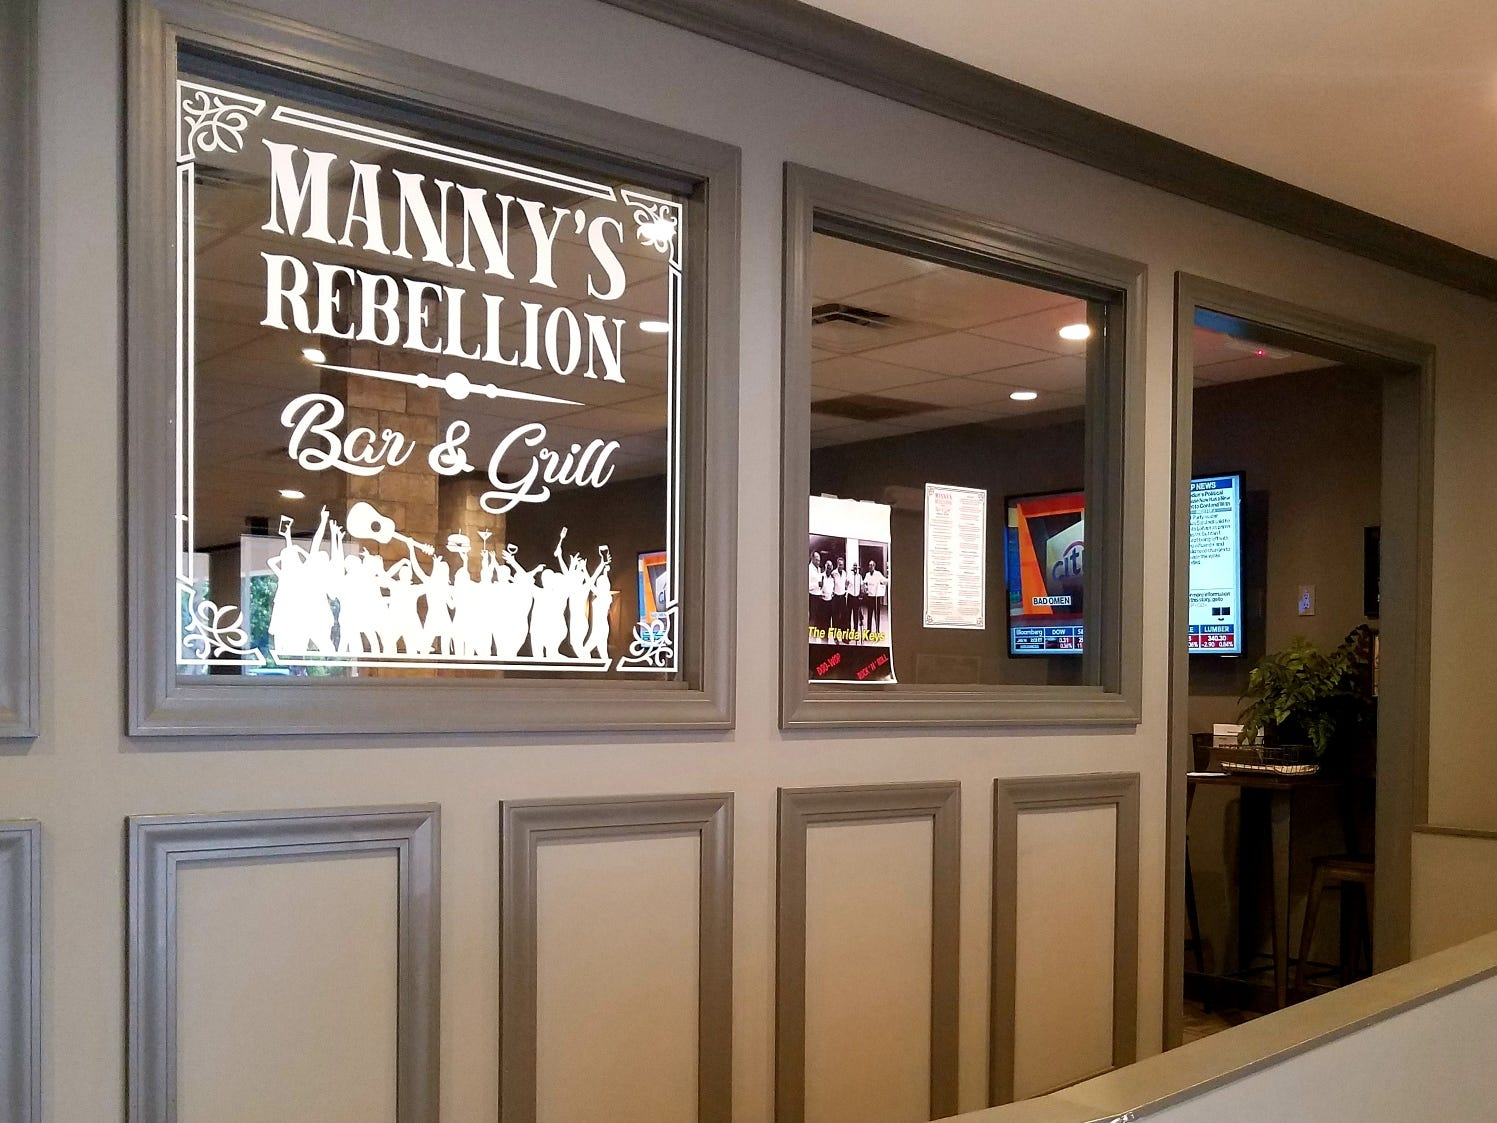 Enter here to discover the trendy Manny's Rebellion inside Manero's Restaurant.